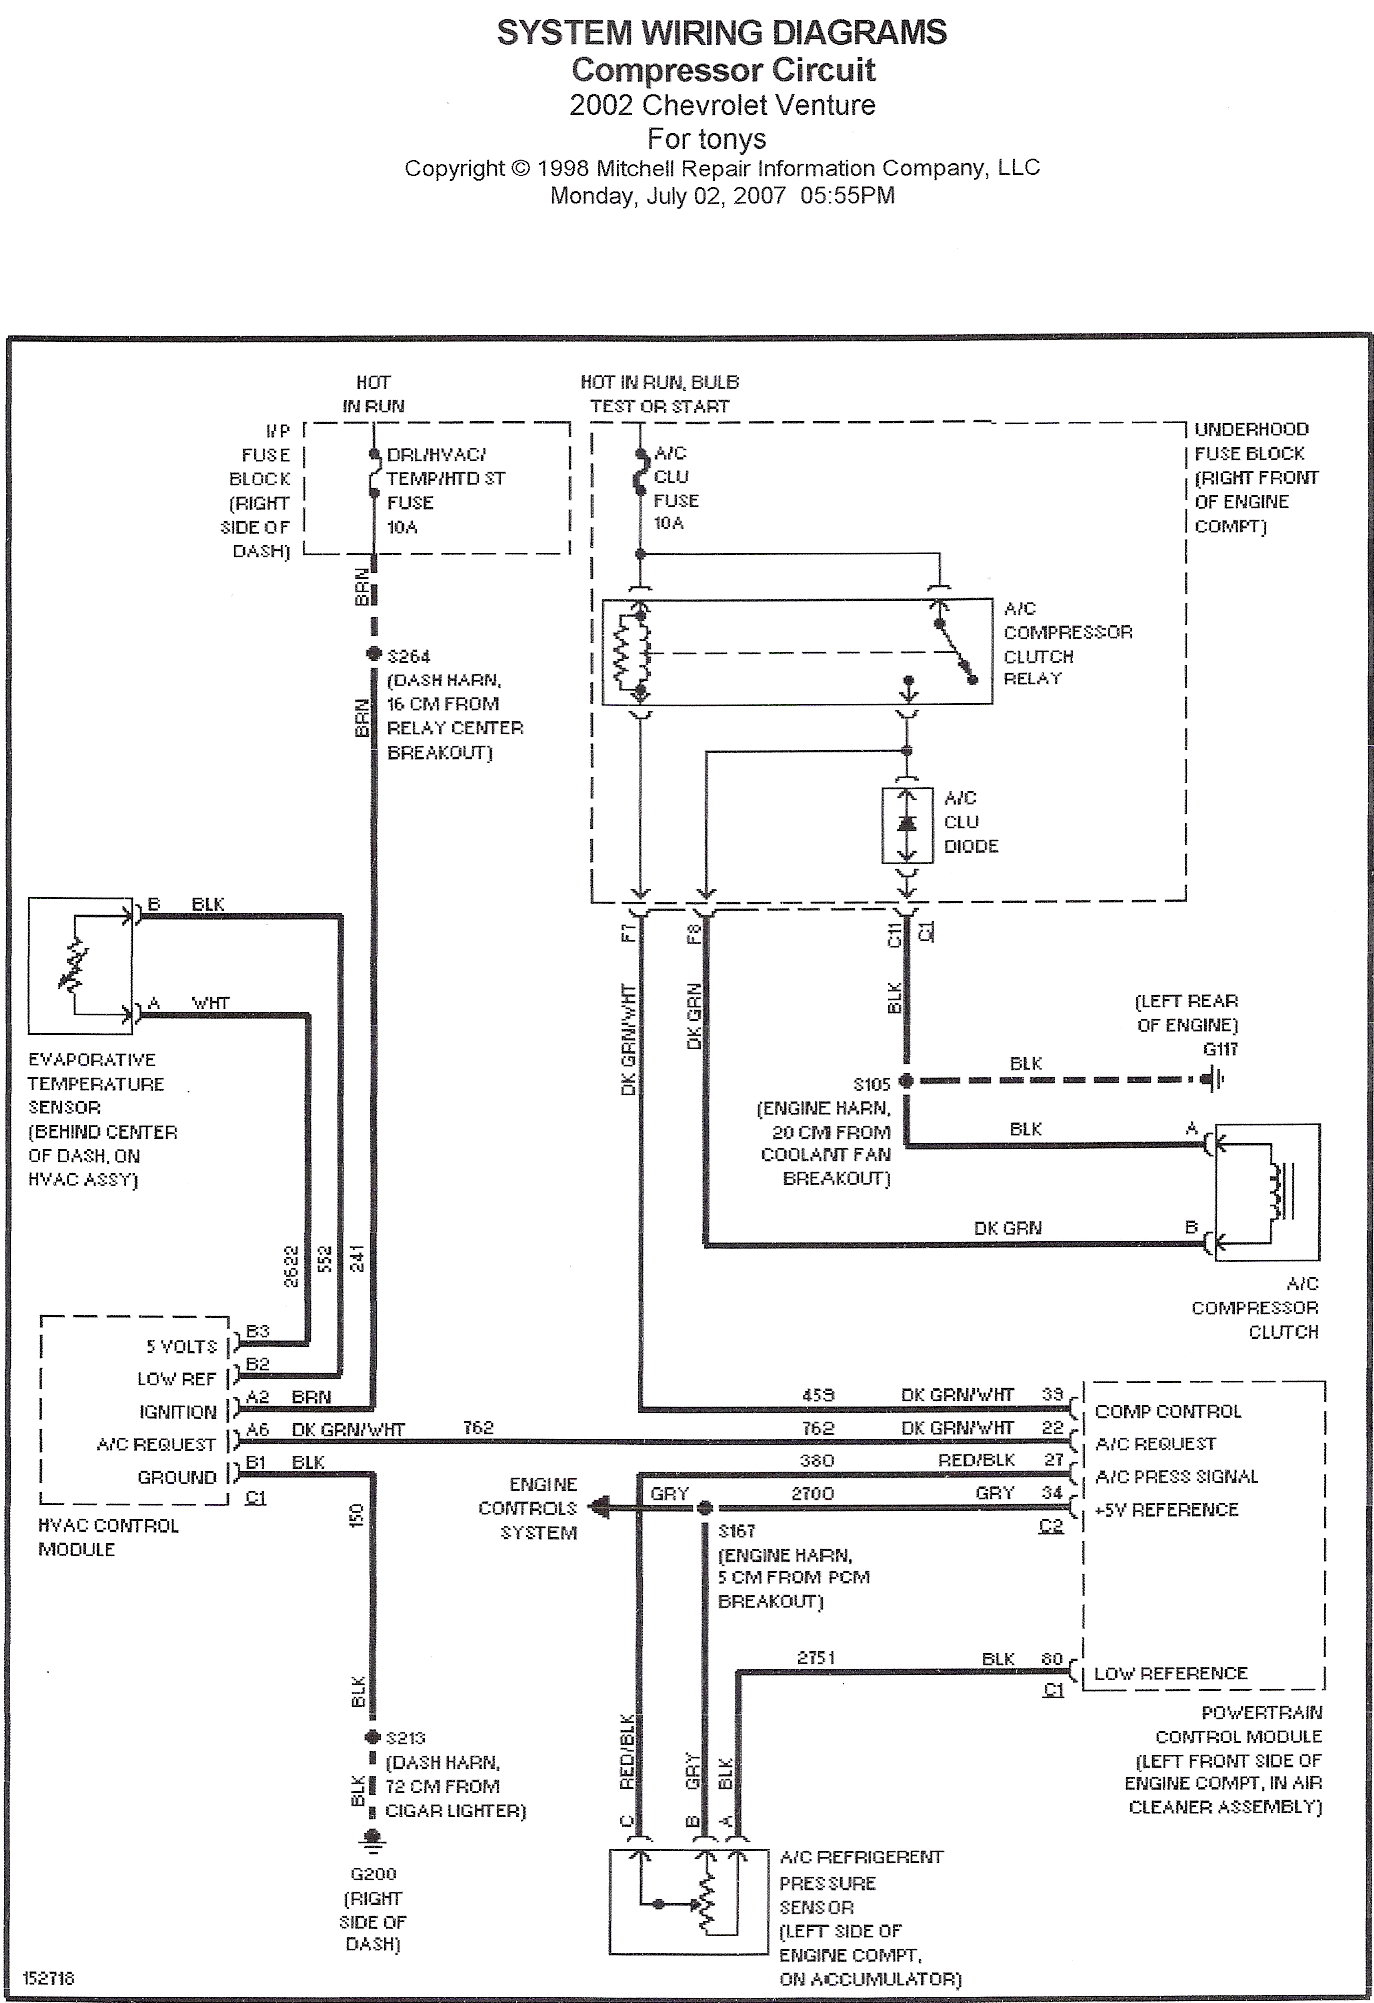 2004 chevrolet venture engine diagram 02 chevy venture wiring diagram free access to wiring diagram  02 chevy venture wiring diagram free